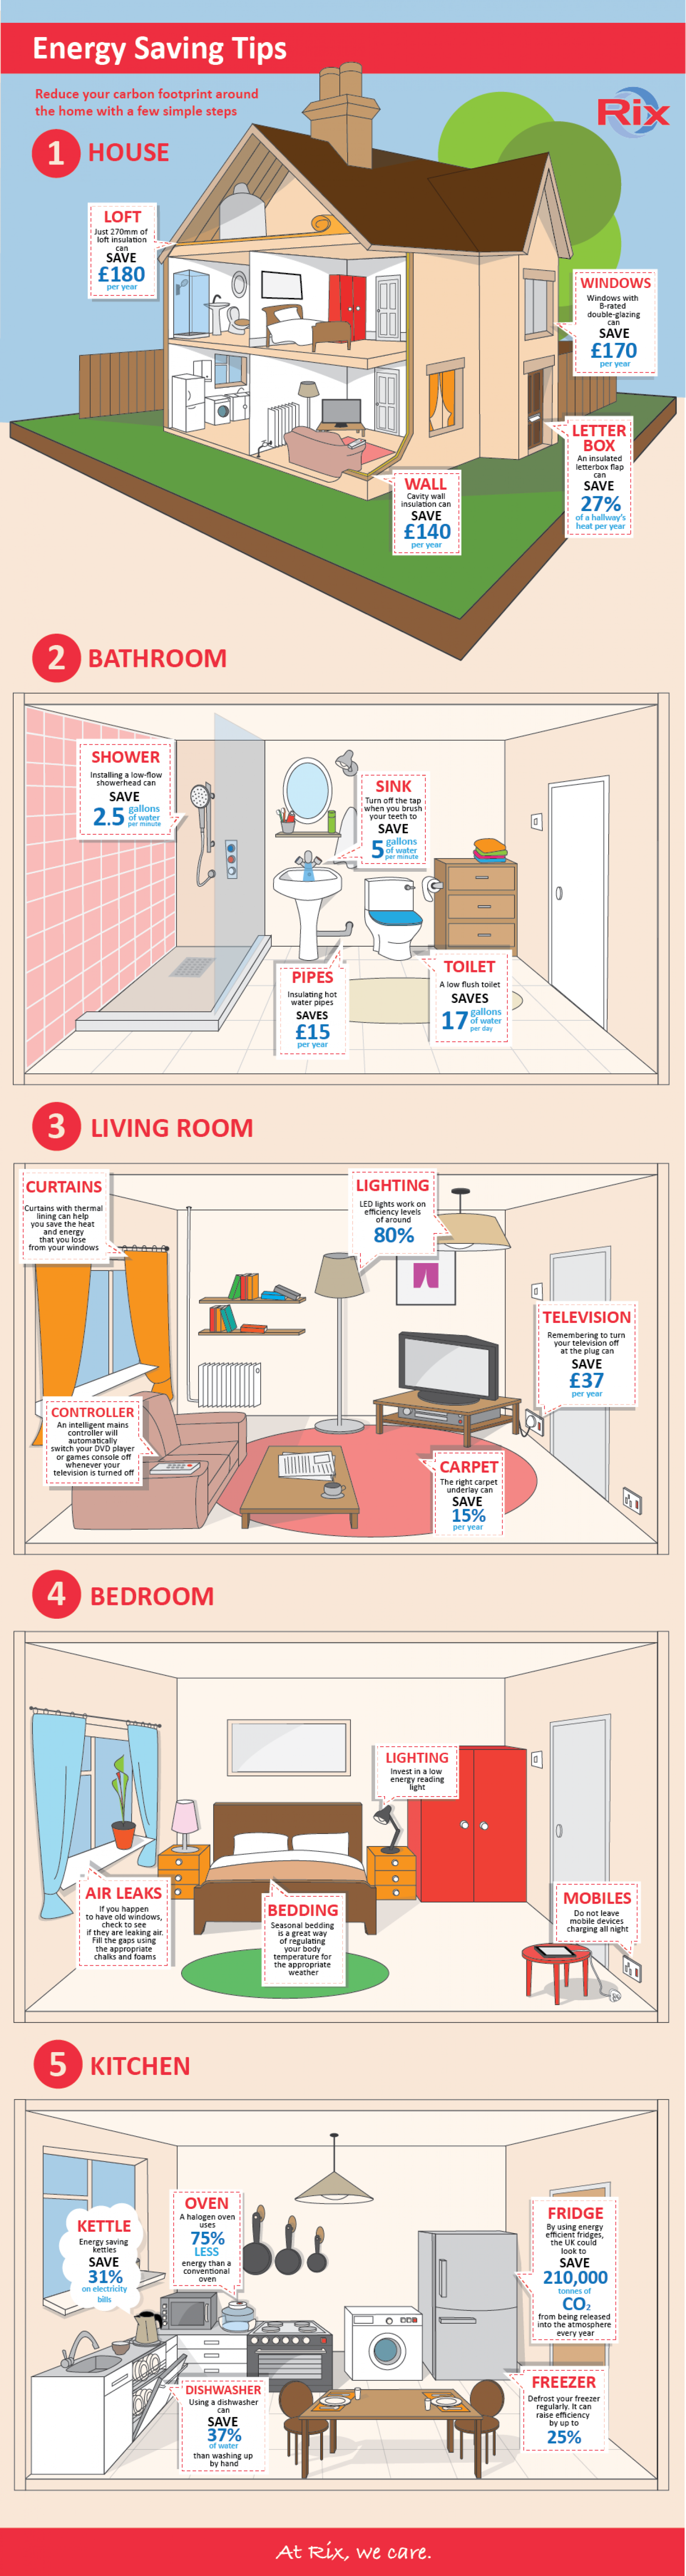 Energy Saving Tips 2013 Infographic